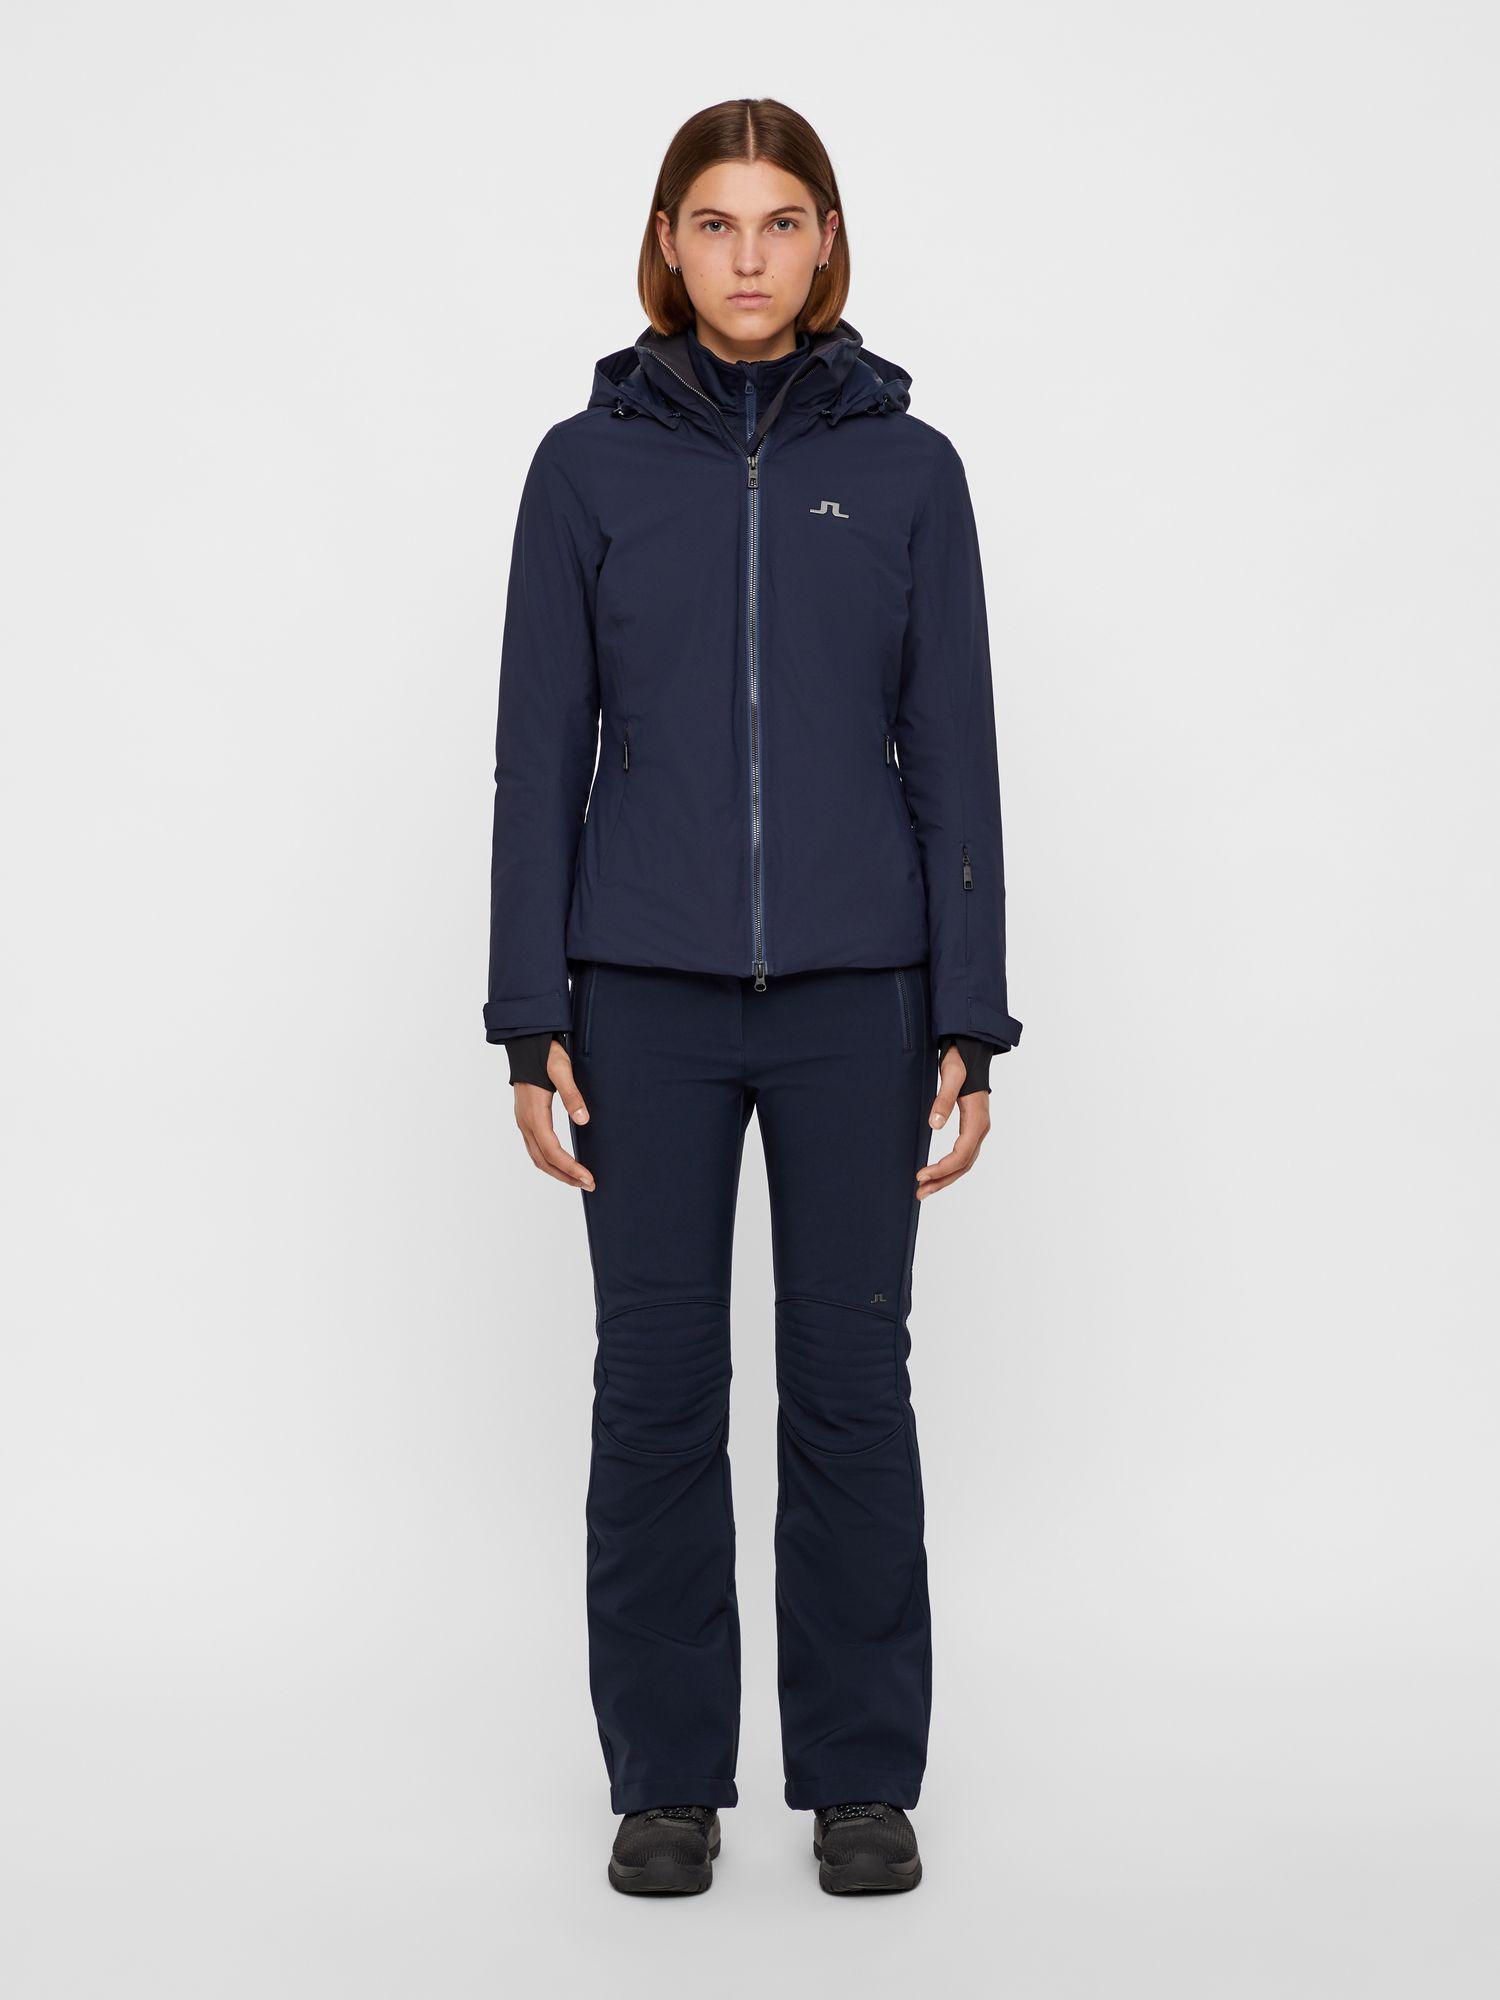 Women's Truuli 2-Layer Ski Jacket Sale